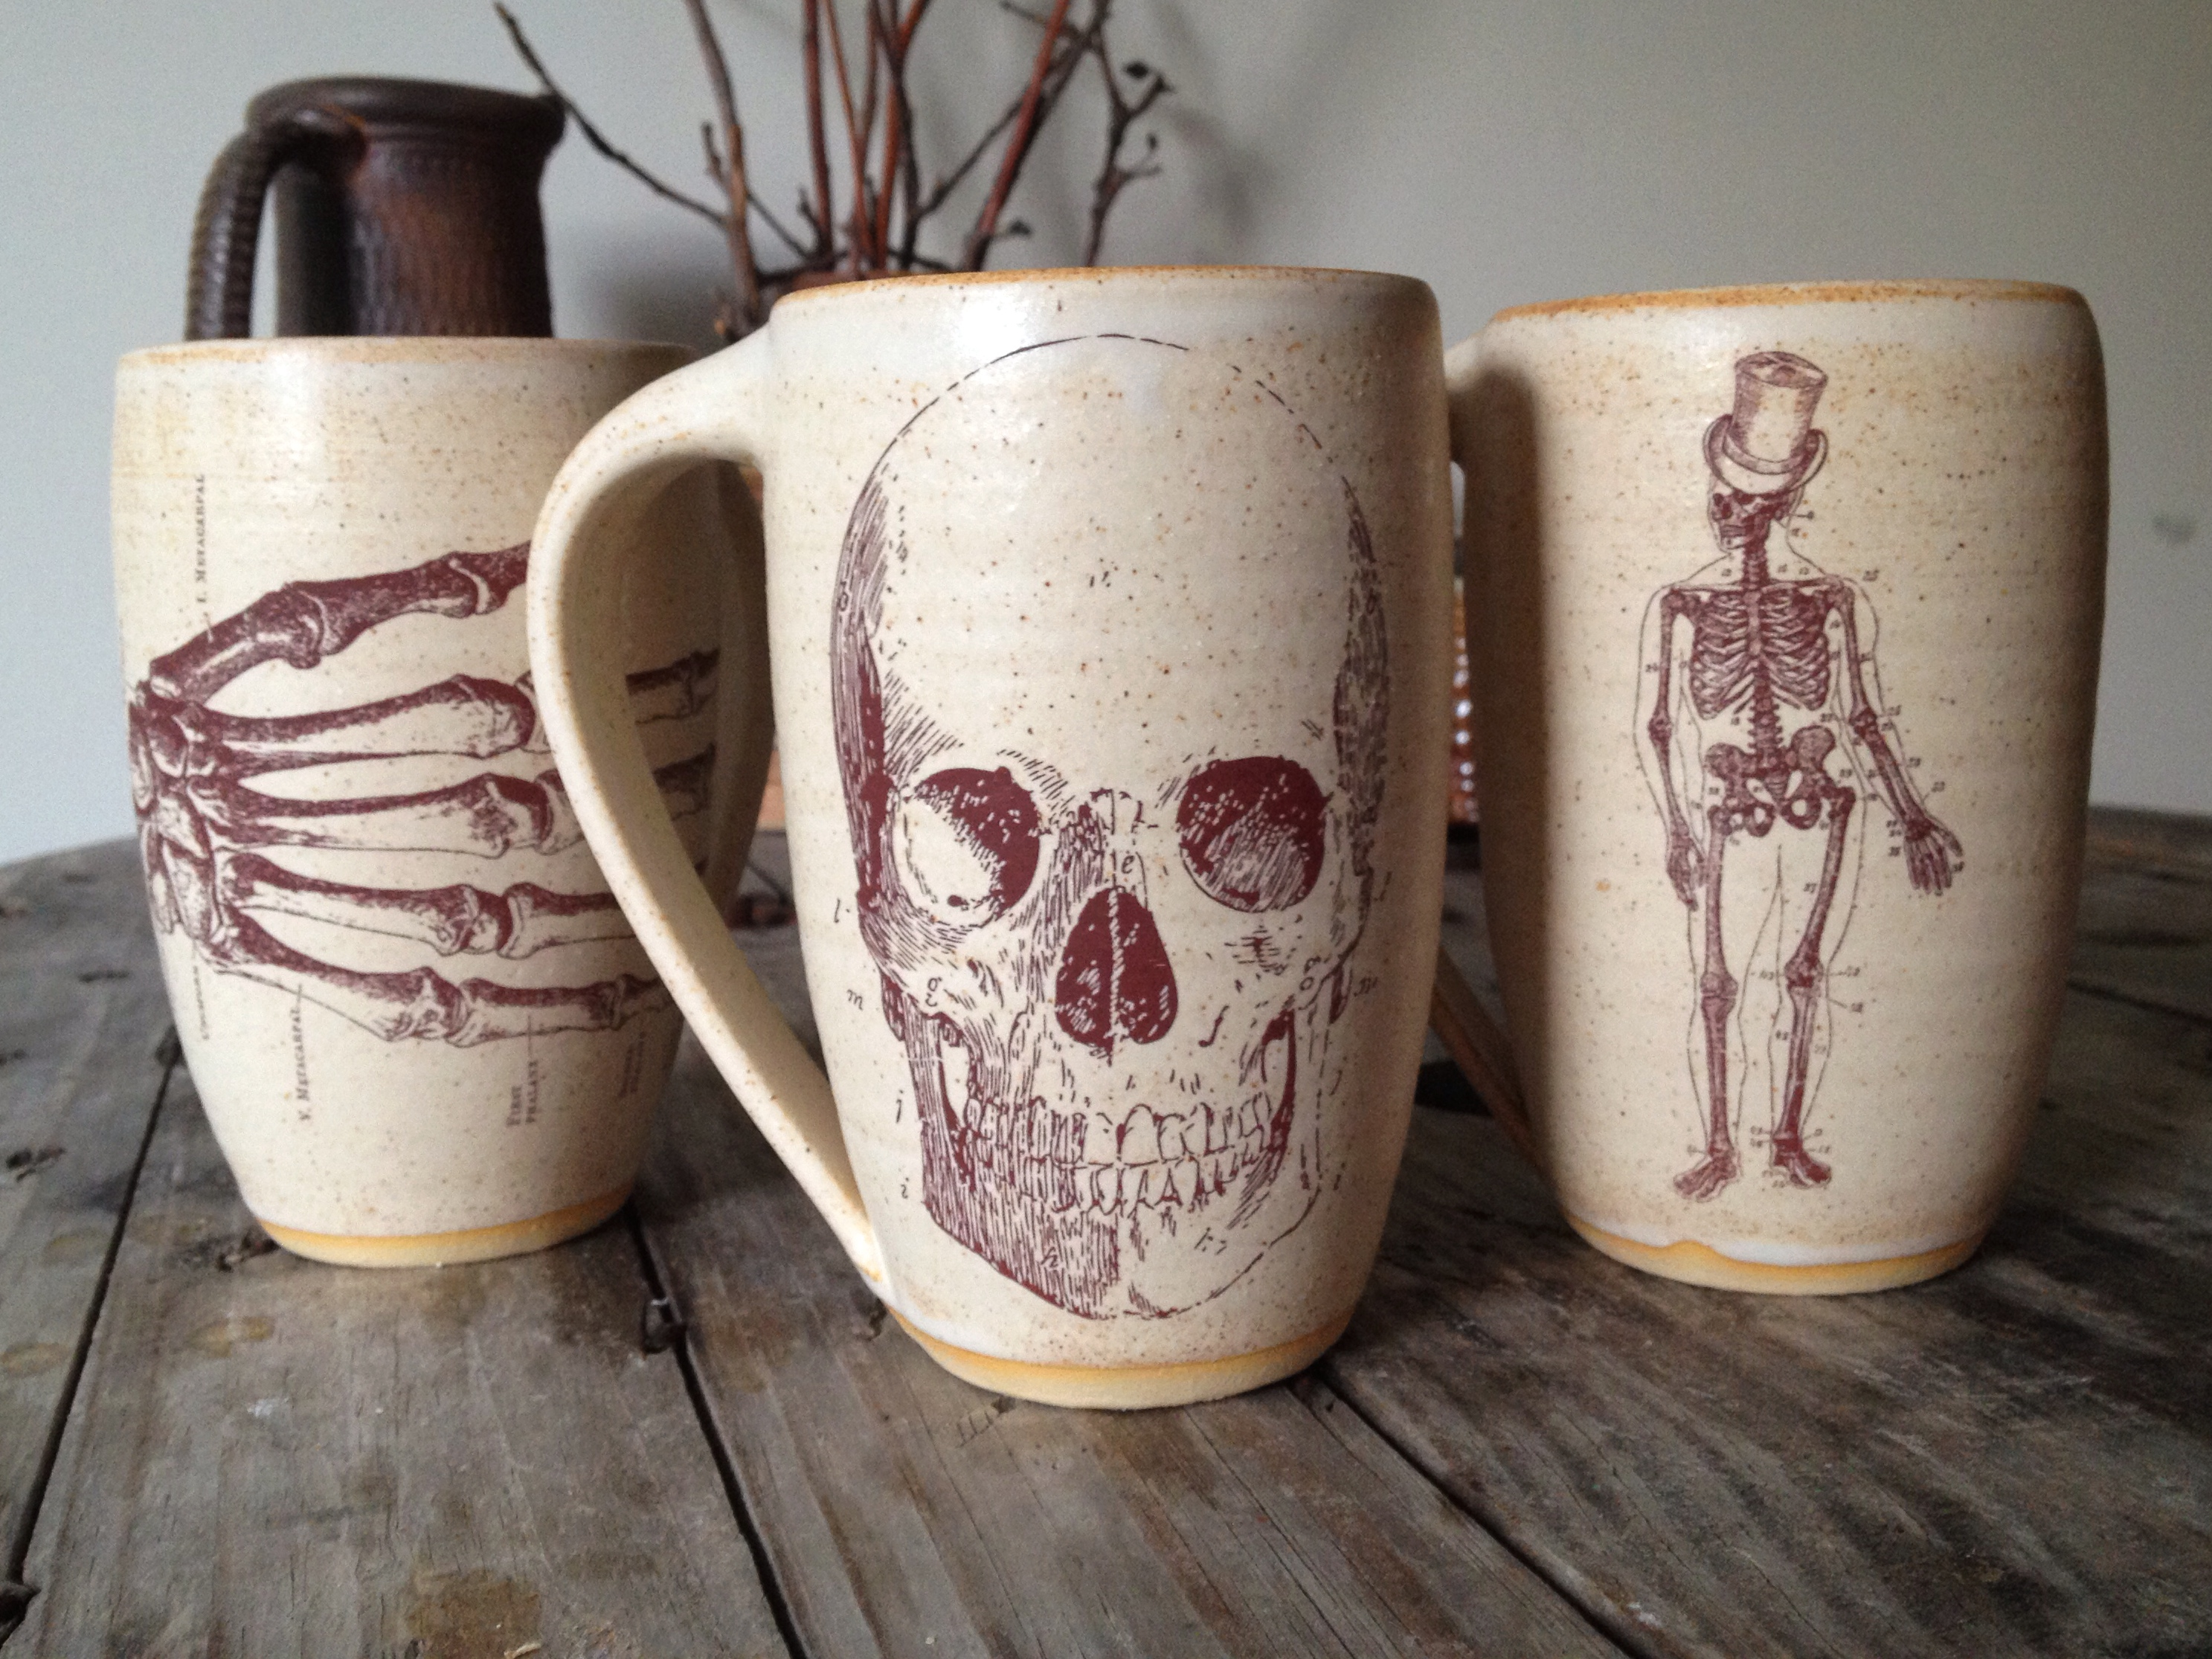 Jennifer Creighton's vintage medical illustration mugs.